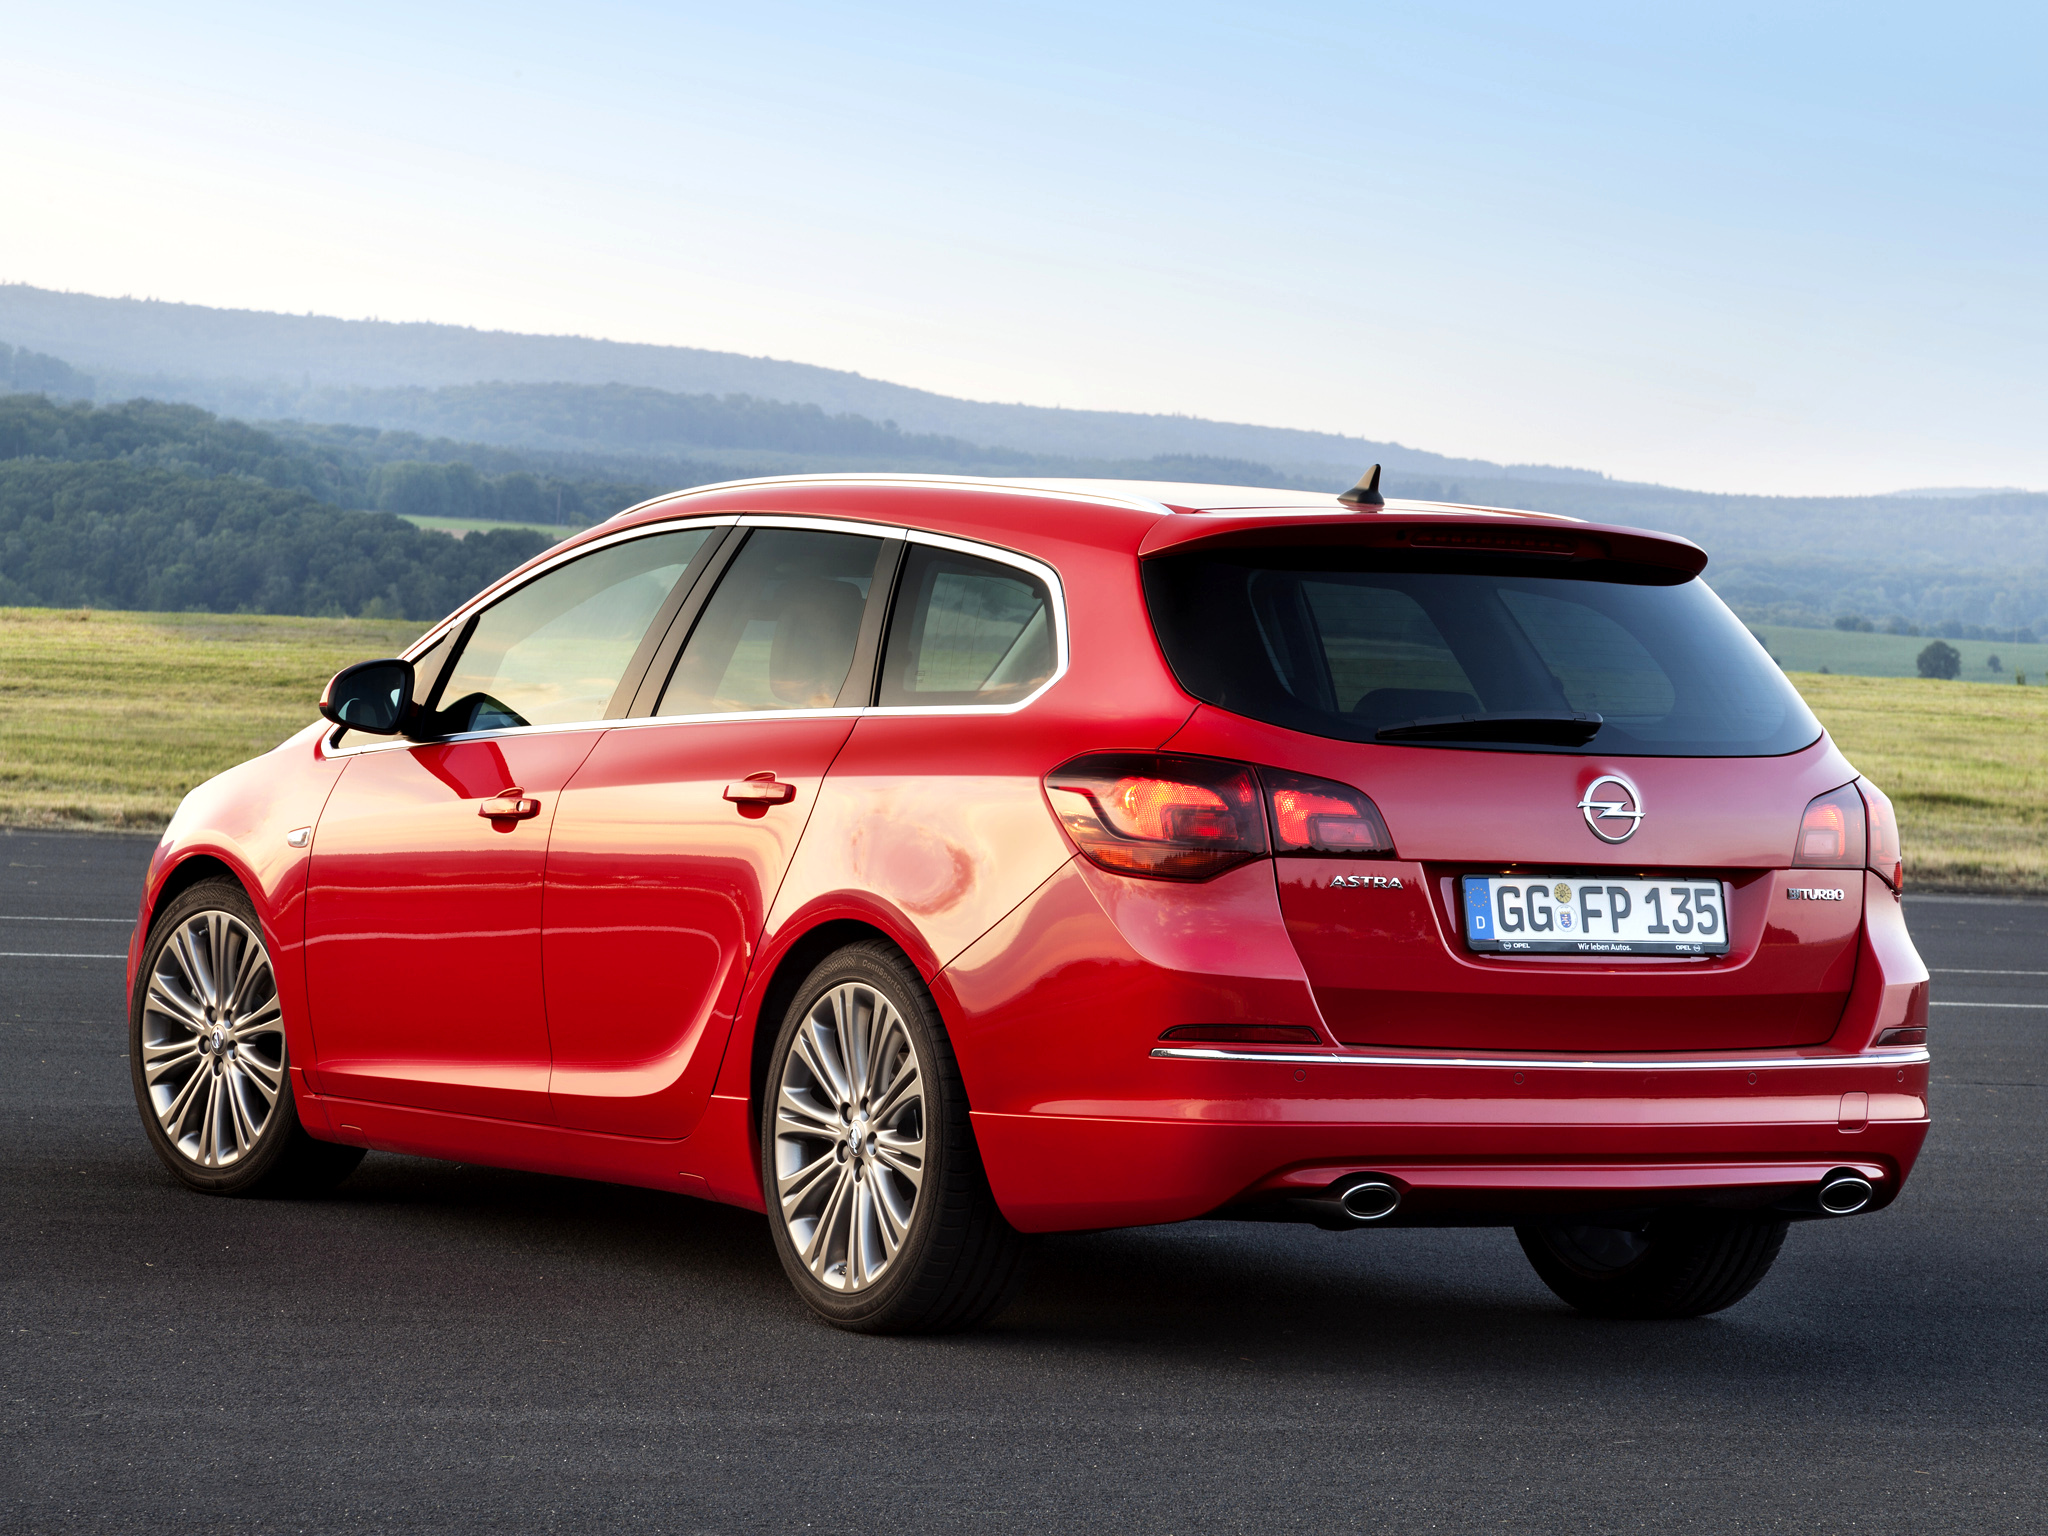 2012 Opel Astra j sports tourer - pictures, information ...